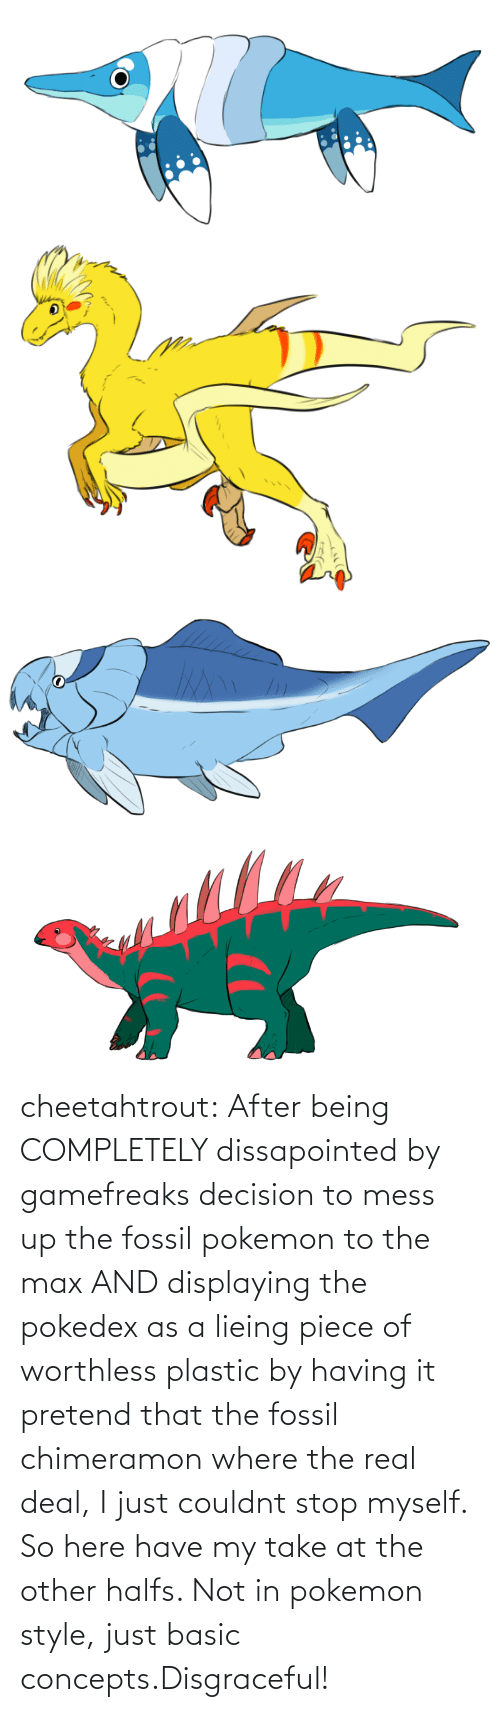 plastic: cheetahtrout:  After being COMPLETELY dissapointed by gamefreaks decision to mess up the fossil pokemon to the max AND displaying the pokedex as a lieing piece of worthless plastic by having it pretend that the fossil chimeramon where the real deal, I just couldnt stop myself. So here have my take at the other halfs. Not in pokemon style, just basic concepts.Disgraceful!